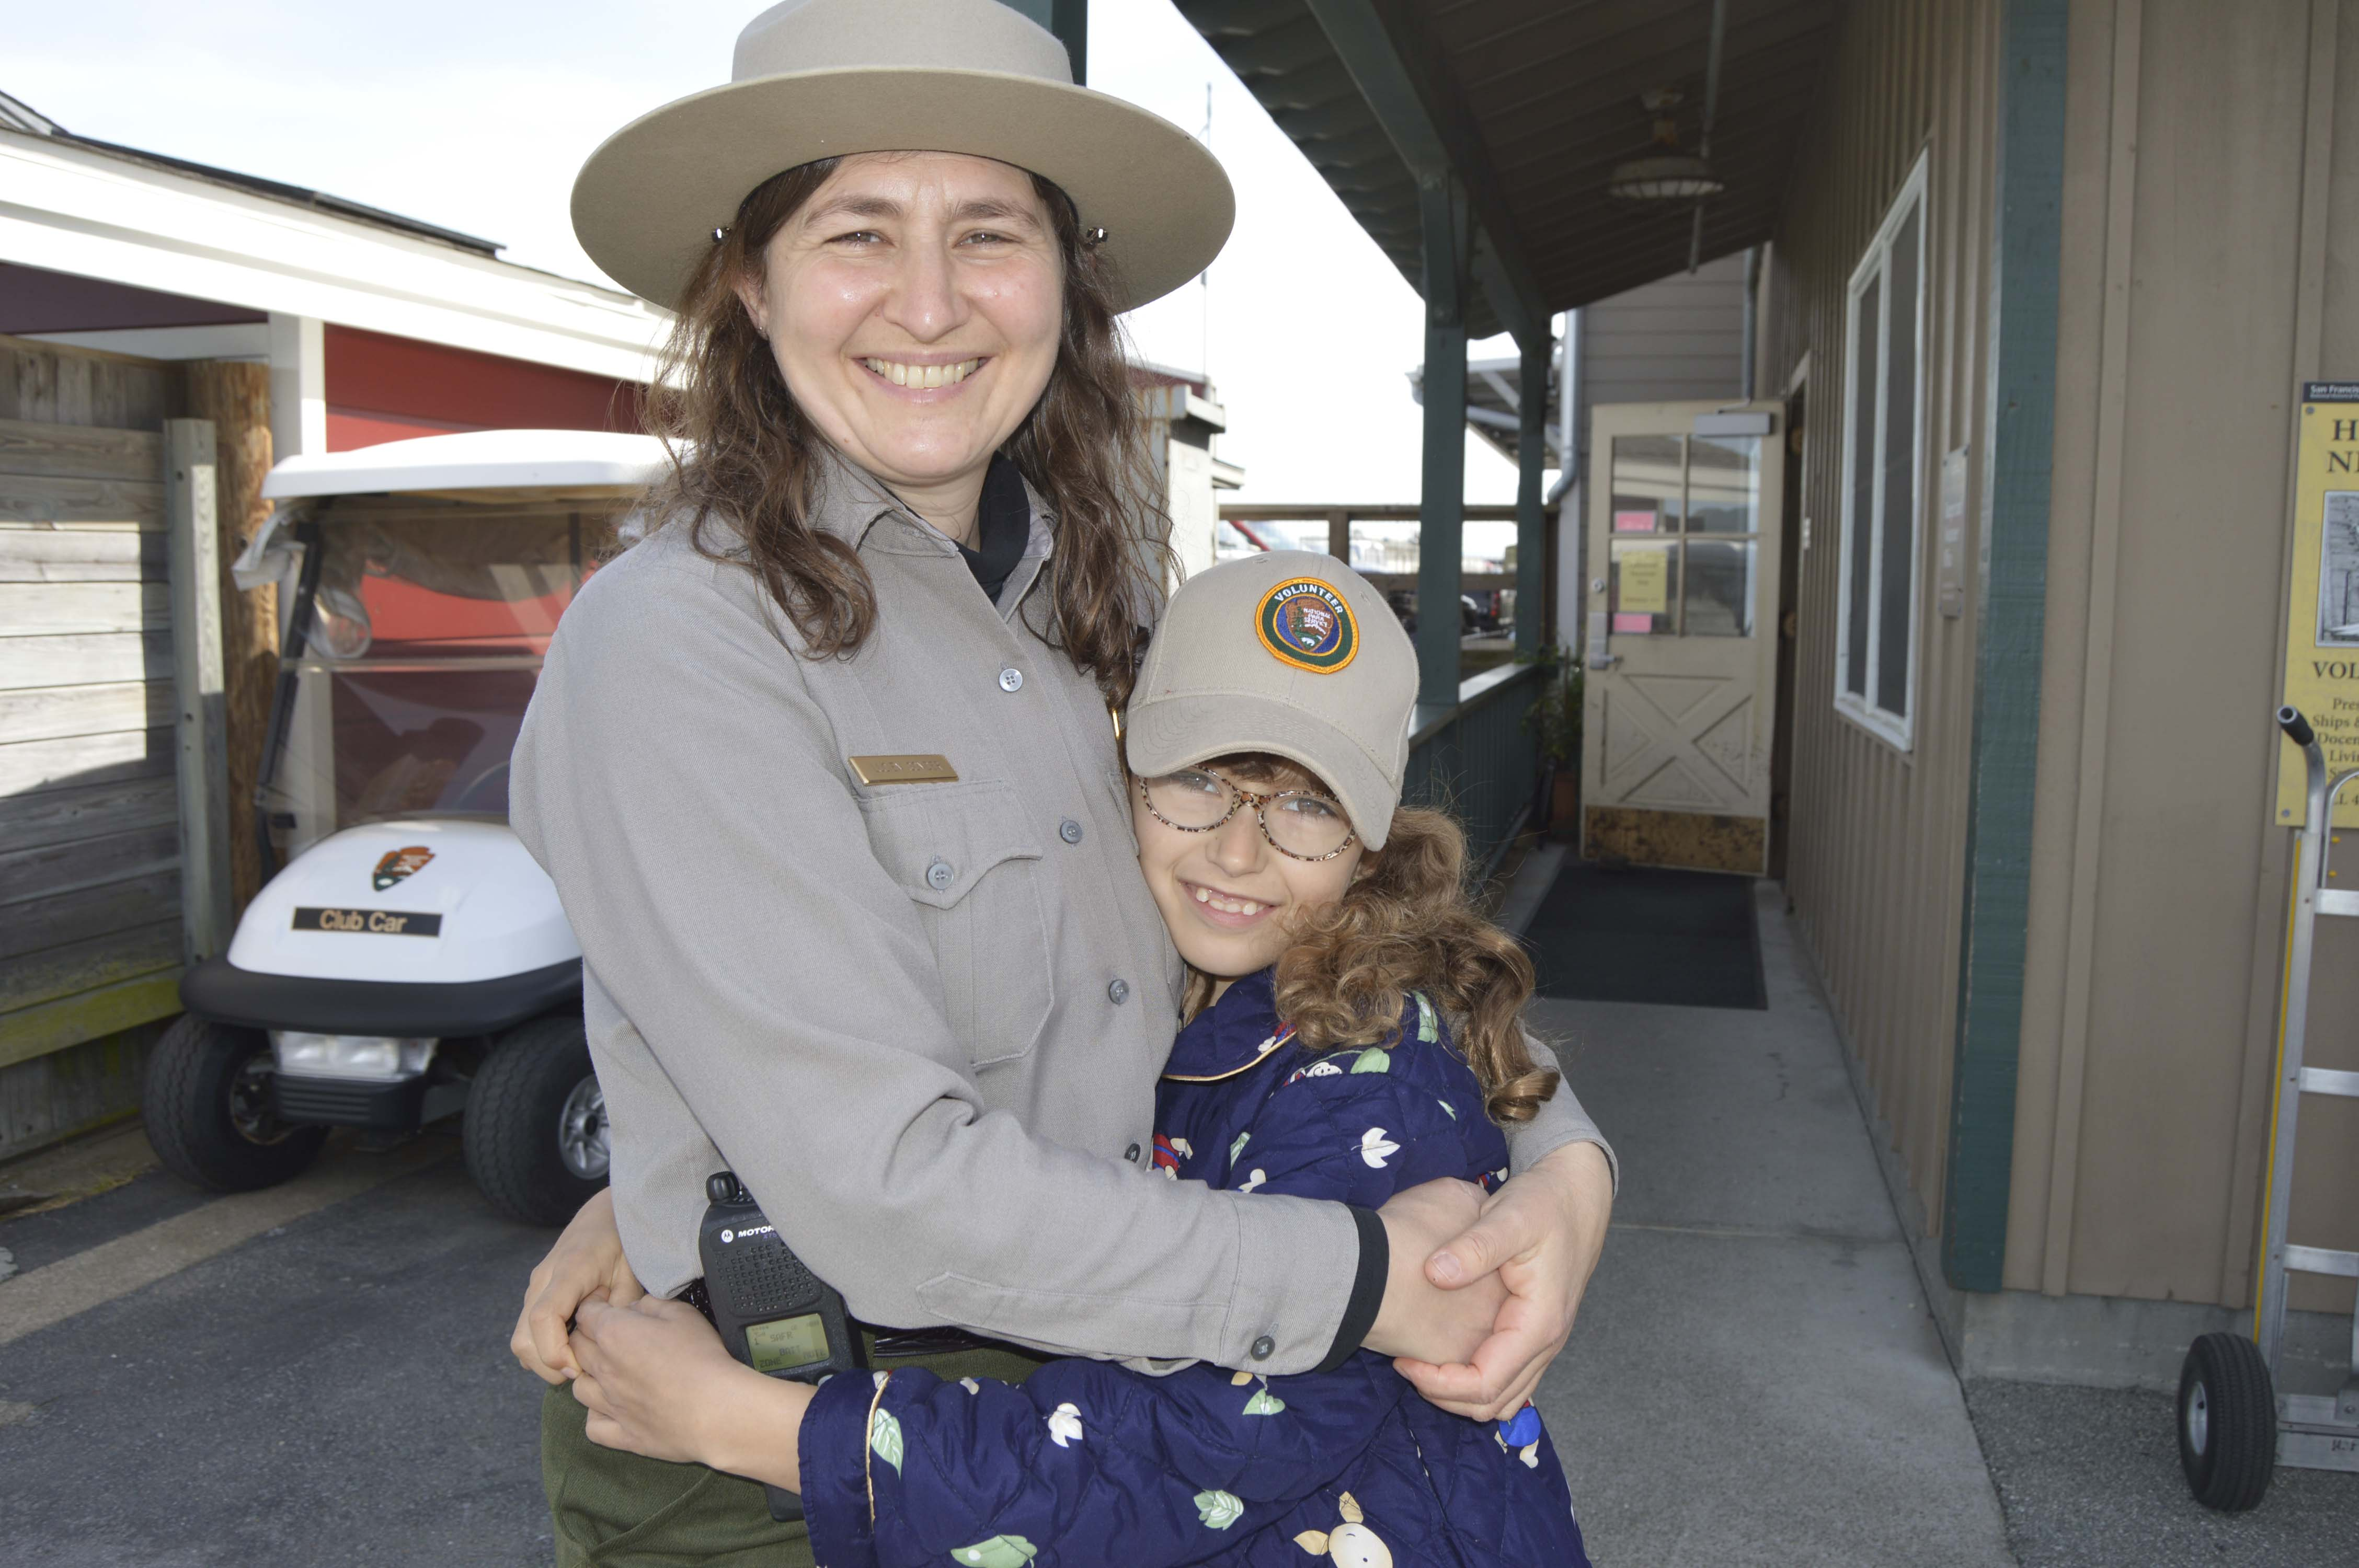 Park Ranger and her daughter